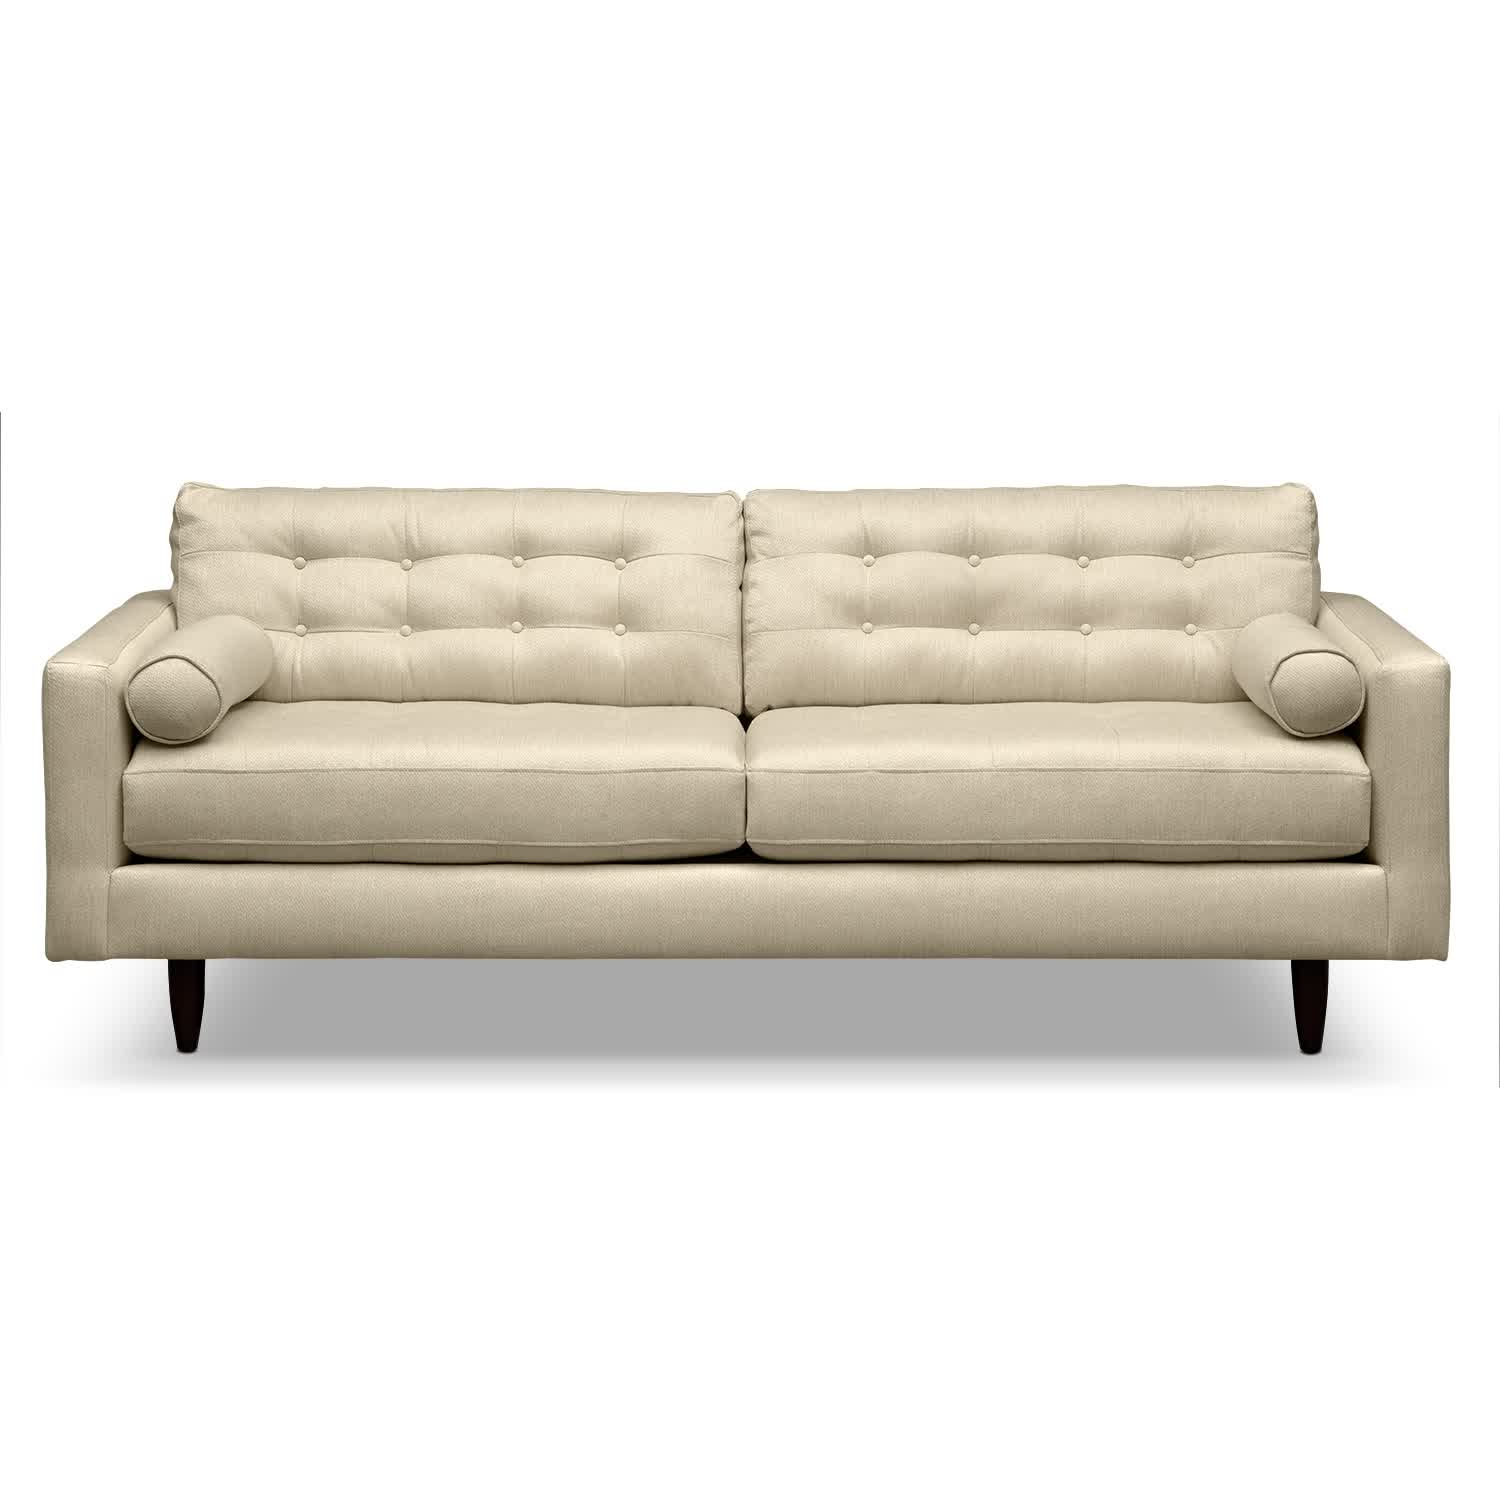 Image of: modern white tufted leather sofa